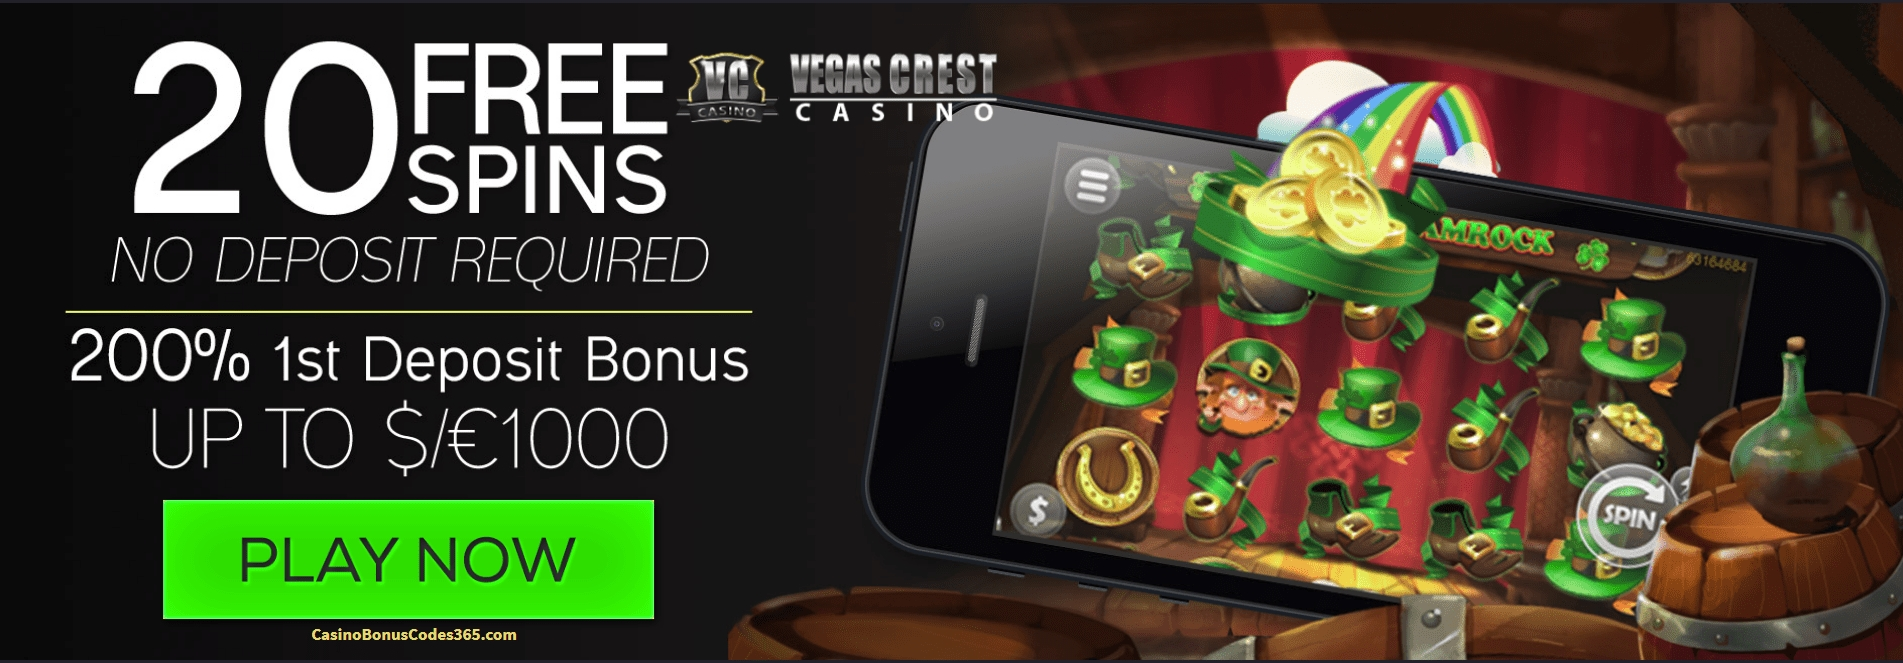 €420 free casino chip at Slots Heaven